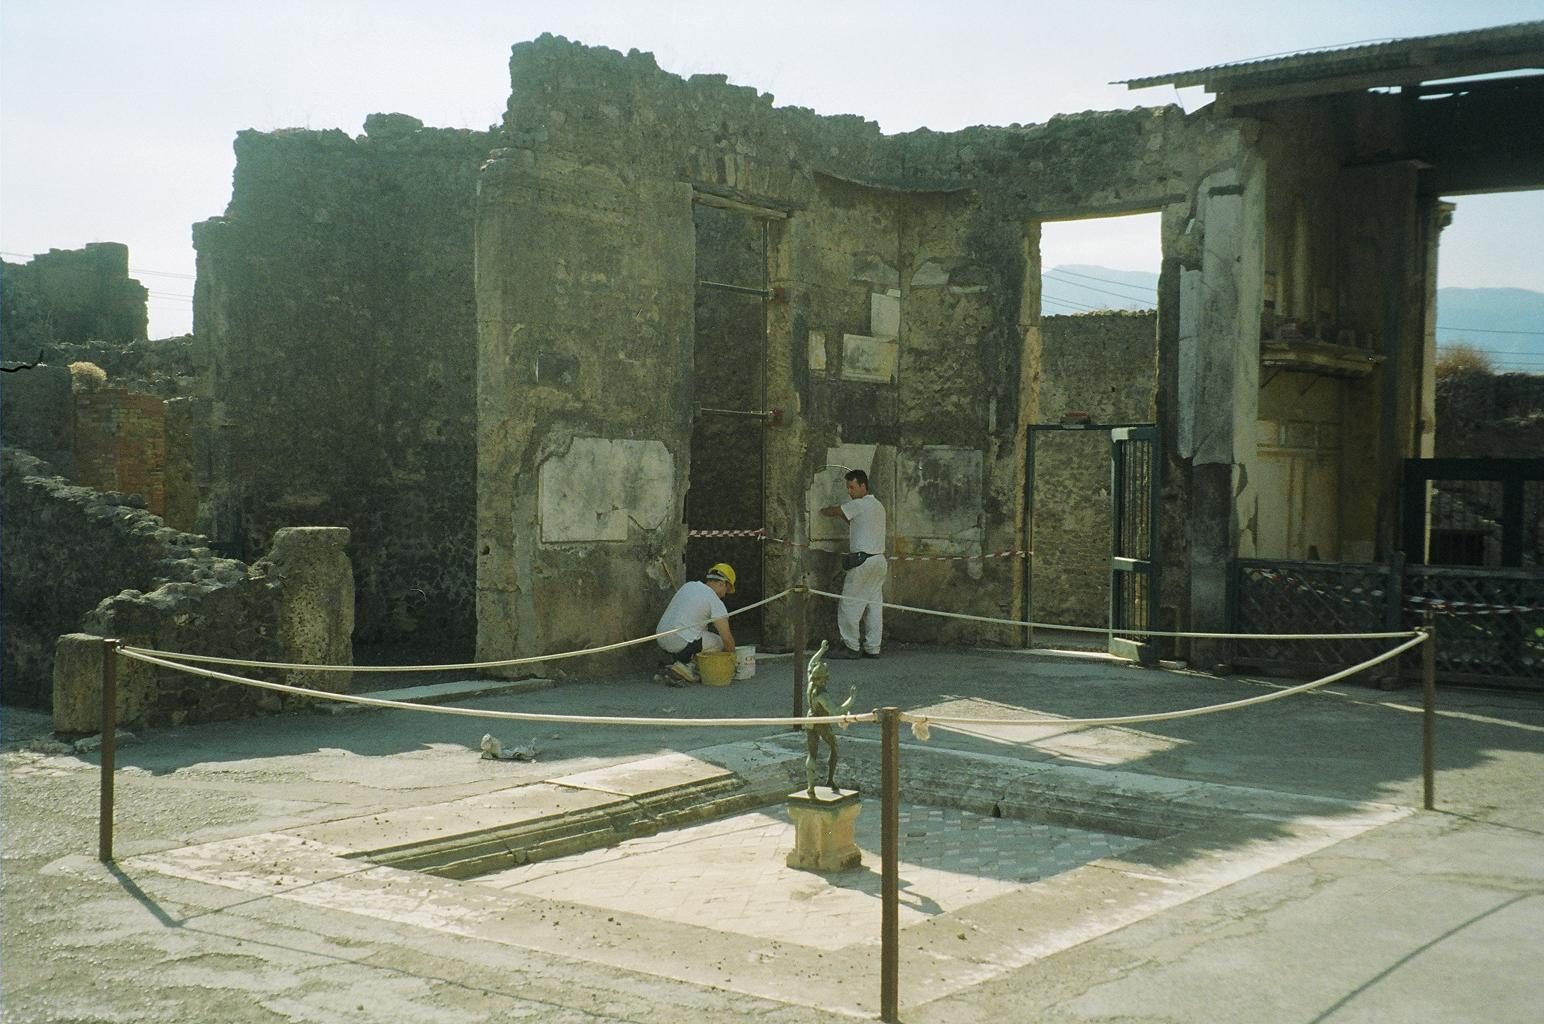 pompeii and herculaneum restoration by ngos